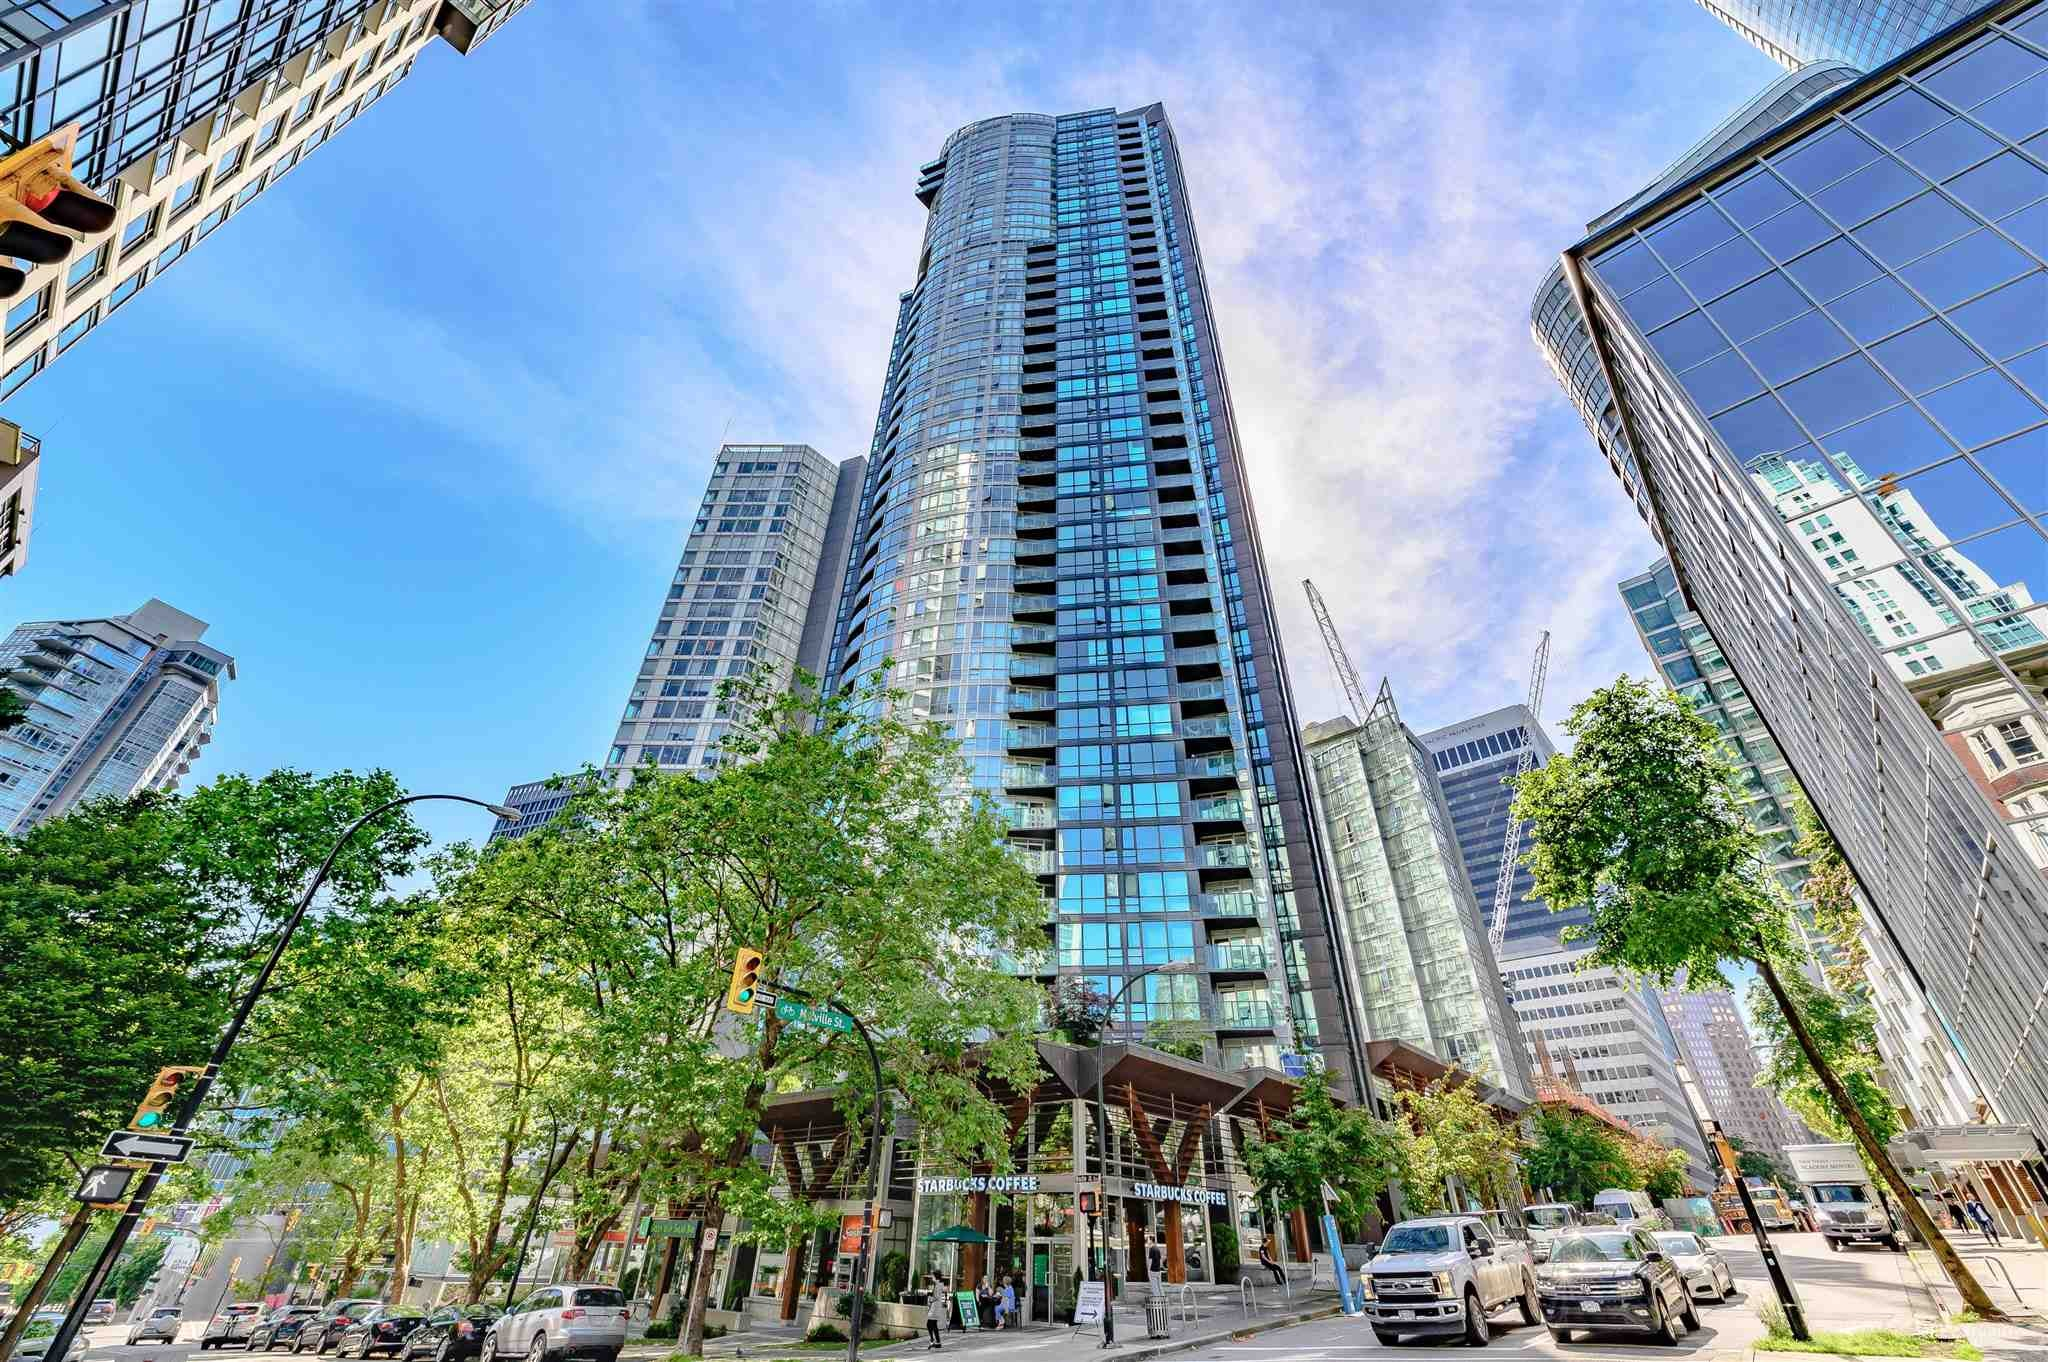 2907 1189 MELVILLE STREET - Coal Harbour Apartment/Condo for sale, 1 Bedroom (R2603117) - #1